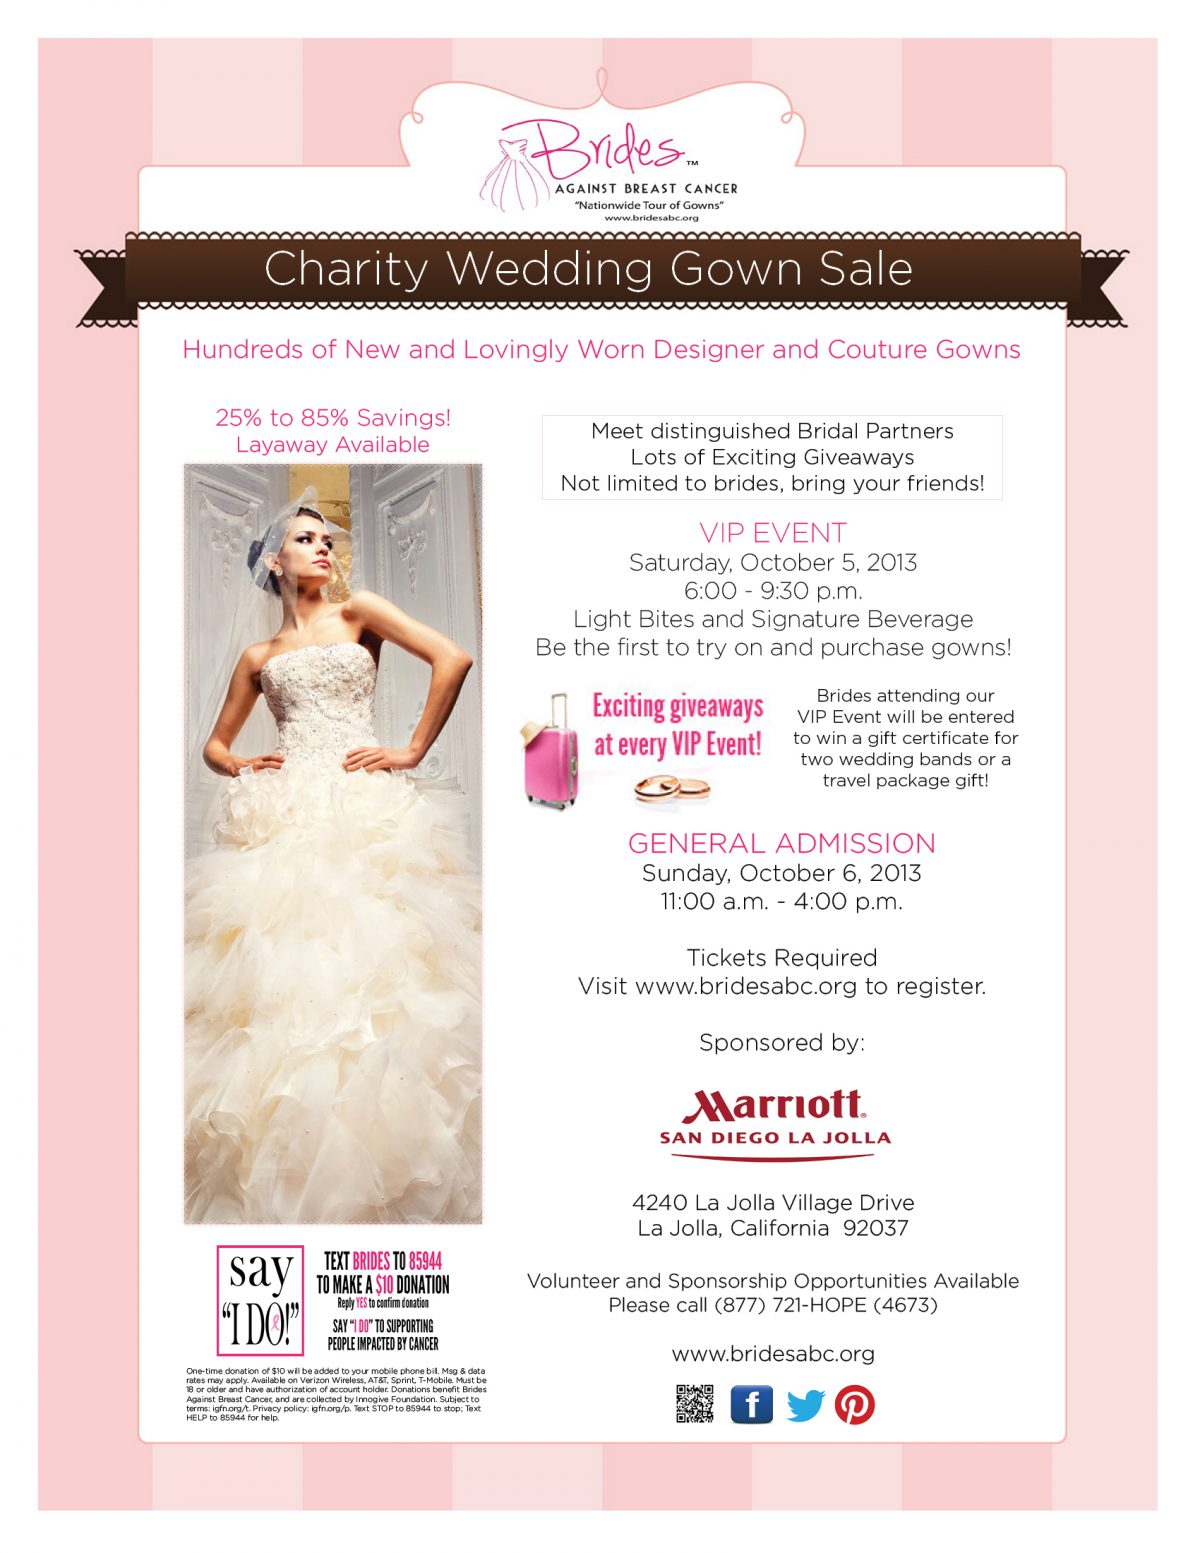 special event :: Brides Against Breast Cancer